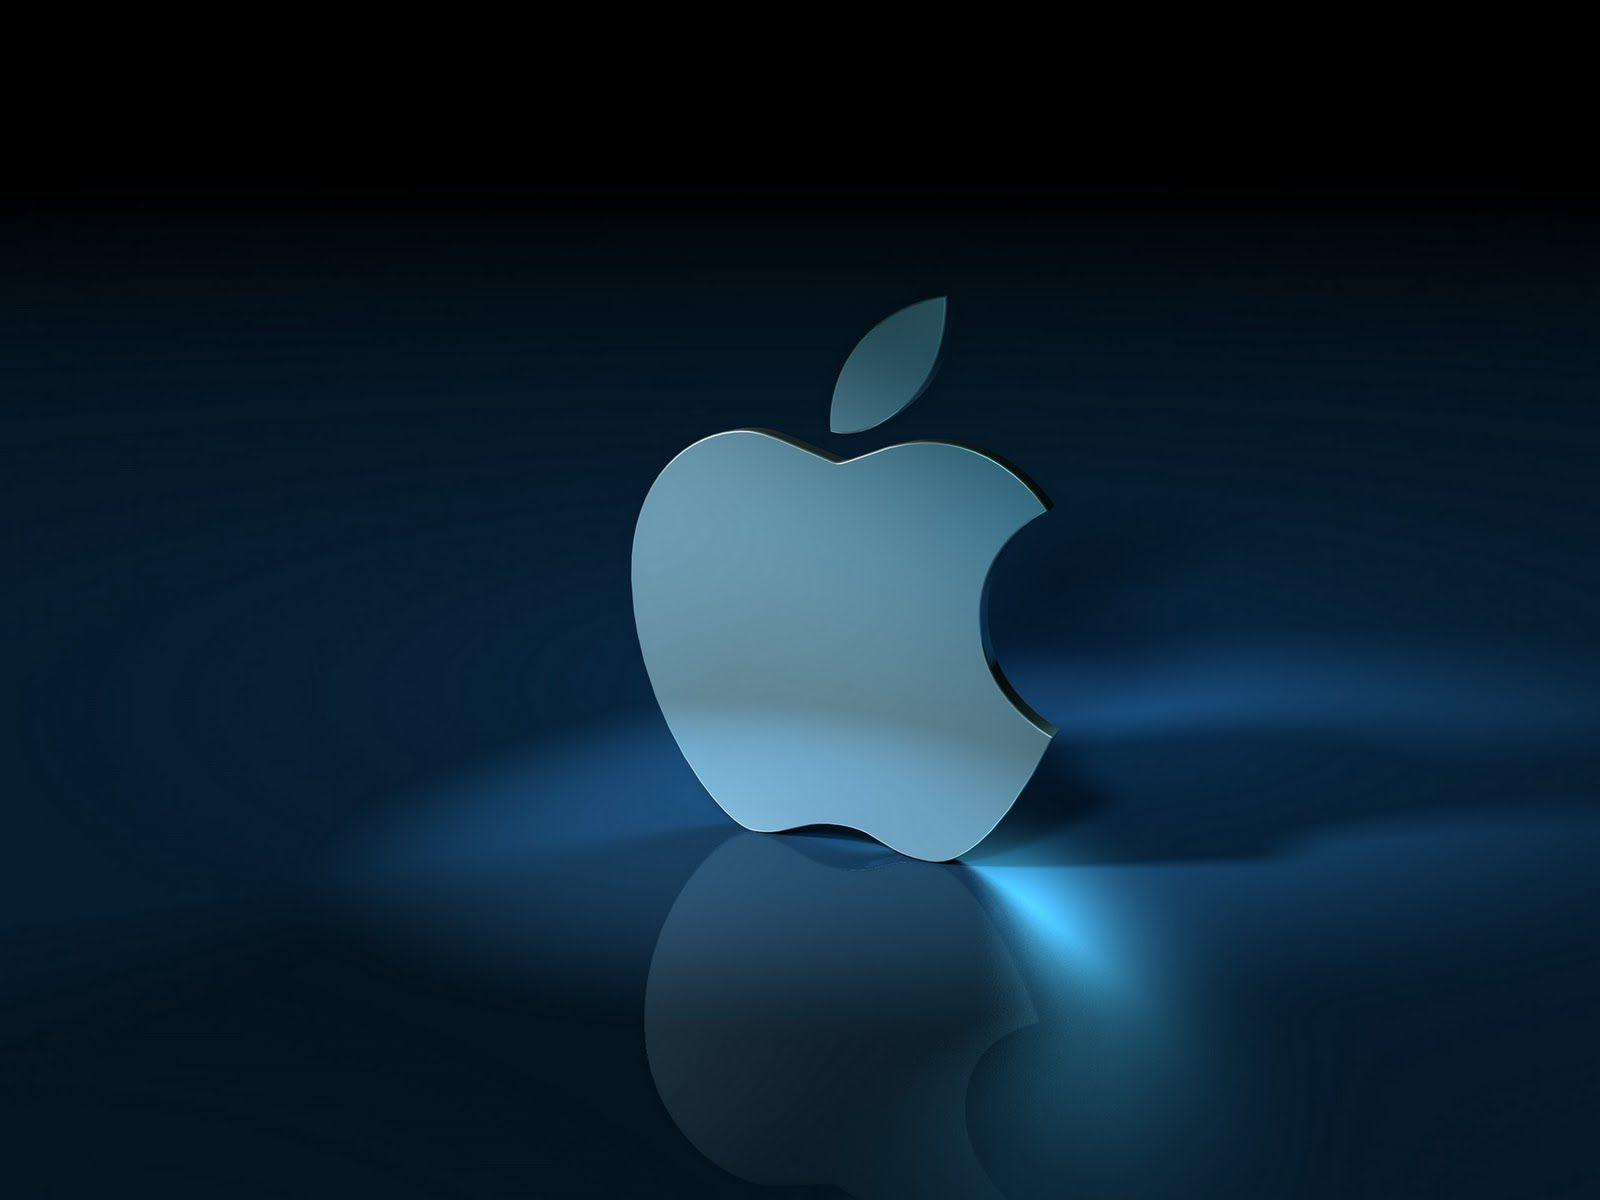 3D Apple Logo Wallpapers